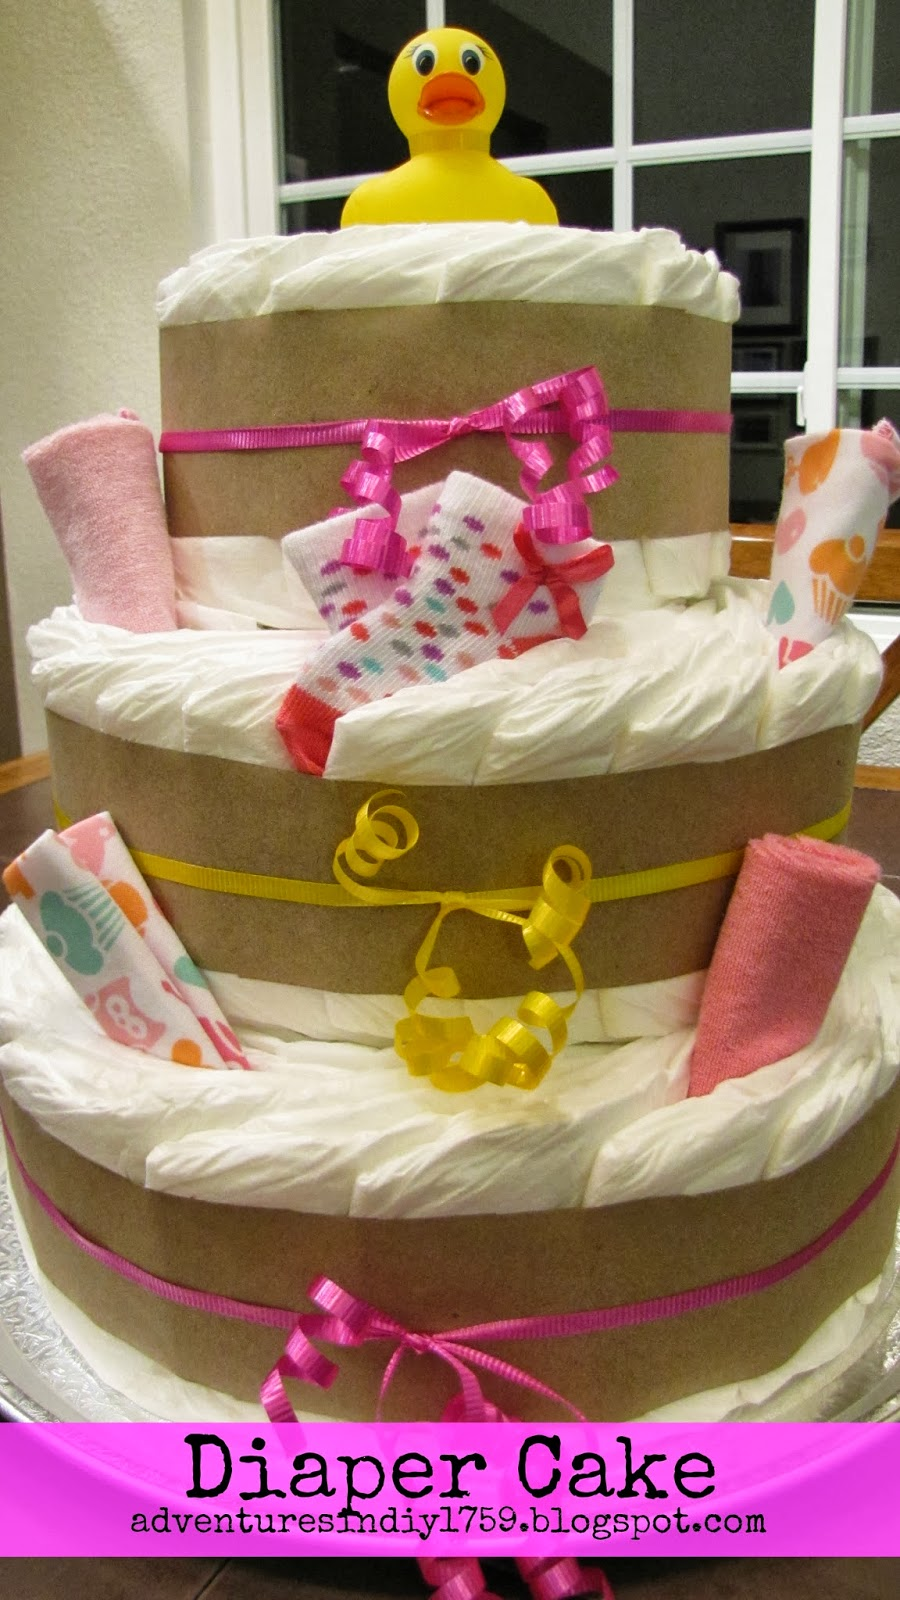 Adventures In Diy Baby Shower Diaper Cake. Note Card Template Free. It Risk Assessment Template. Food Ideas For Graduation Parties. Graduation Gifts Under 10. High School Graduation Announcement Etiquette. Create Resume Builder Template Free. Free Graduation Clip Art. Industrial Organizational Psychology Graduate Programs